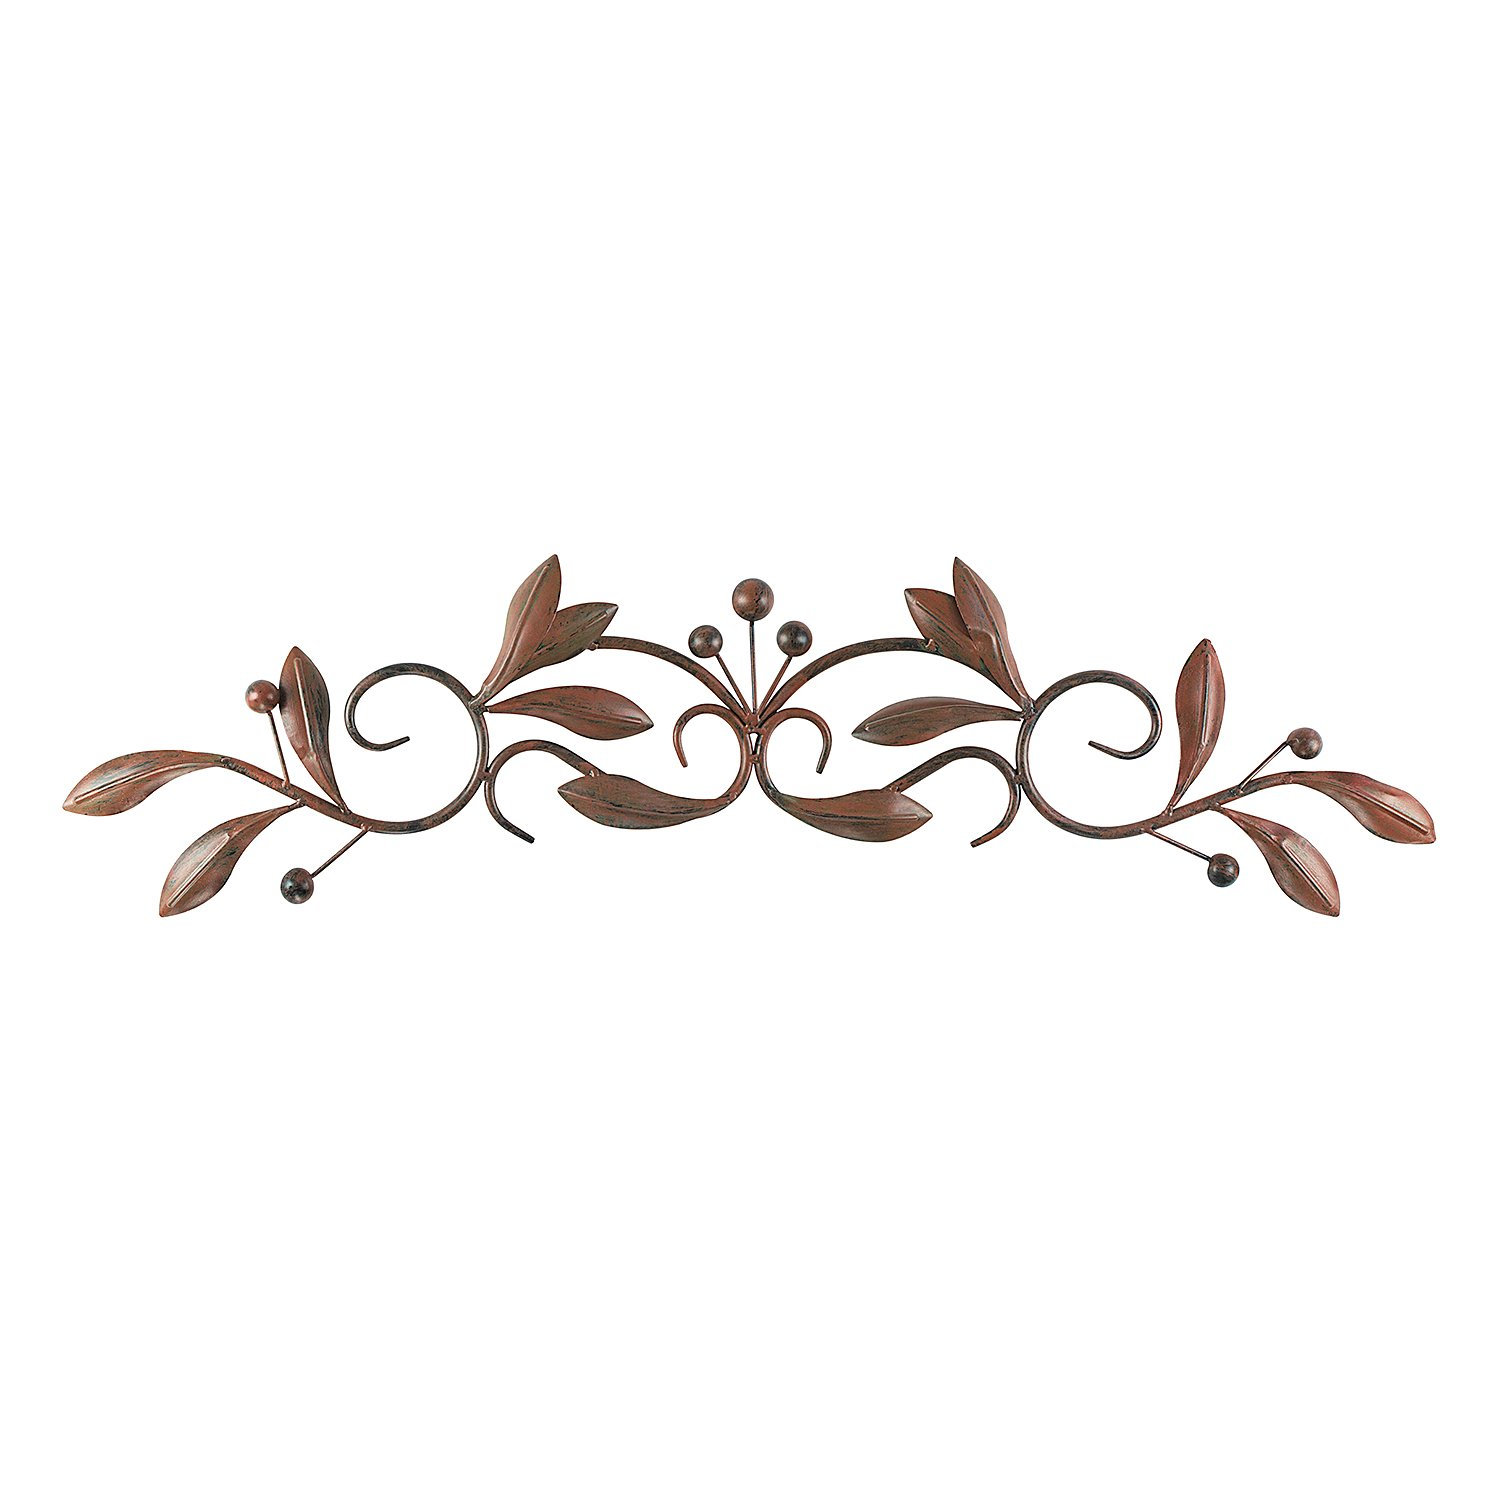 Super Z Outlet Brown Burnt Red Leaf & Beads Urban Design Iron Metal Wall Art Decoration for Home & Kitchen Gifts by Super Z Outlet